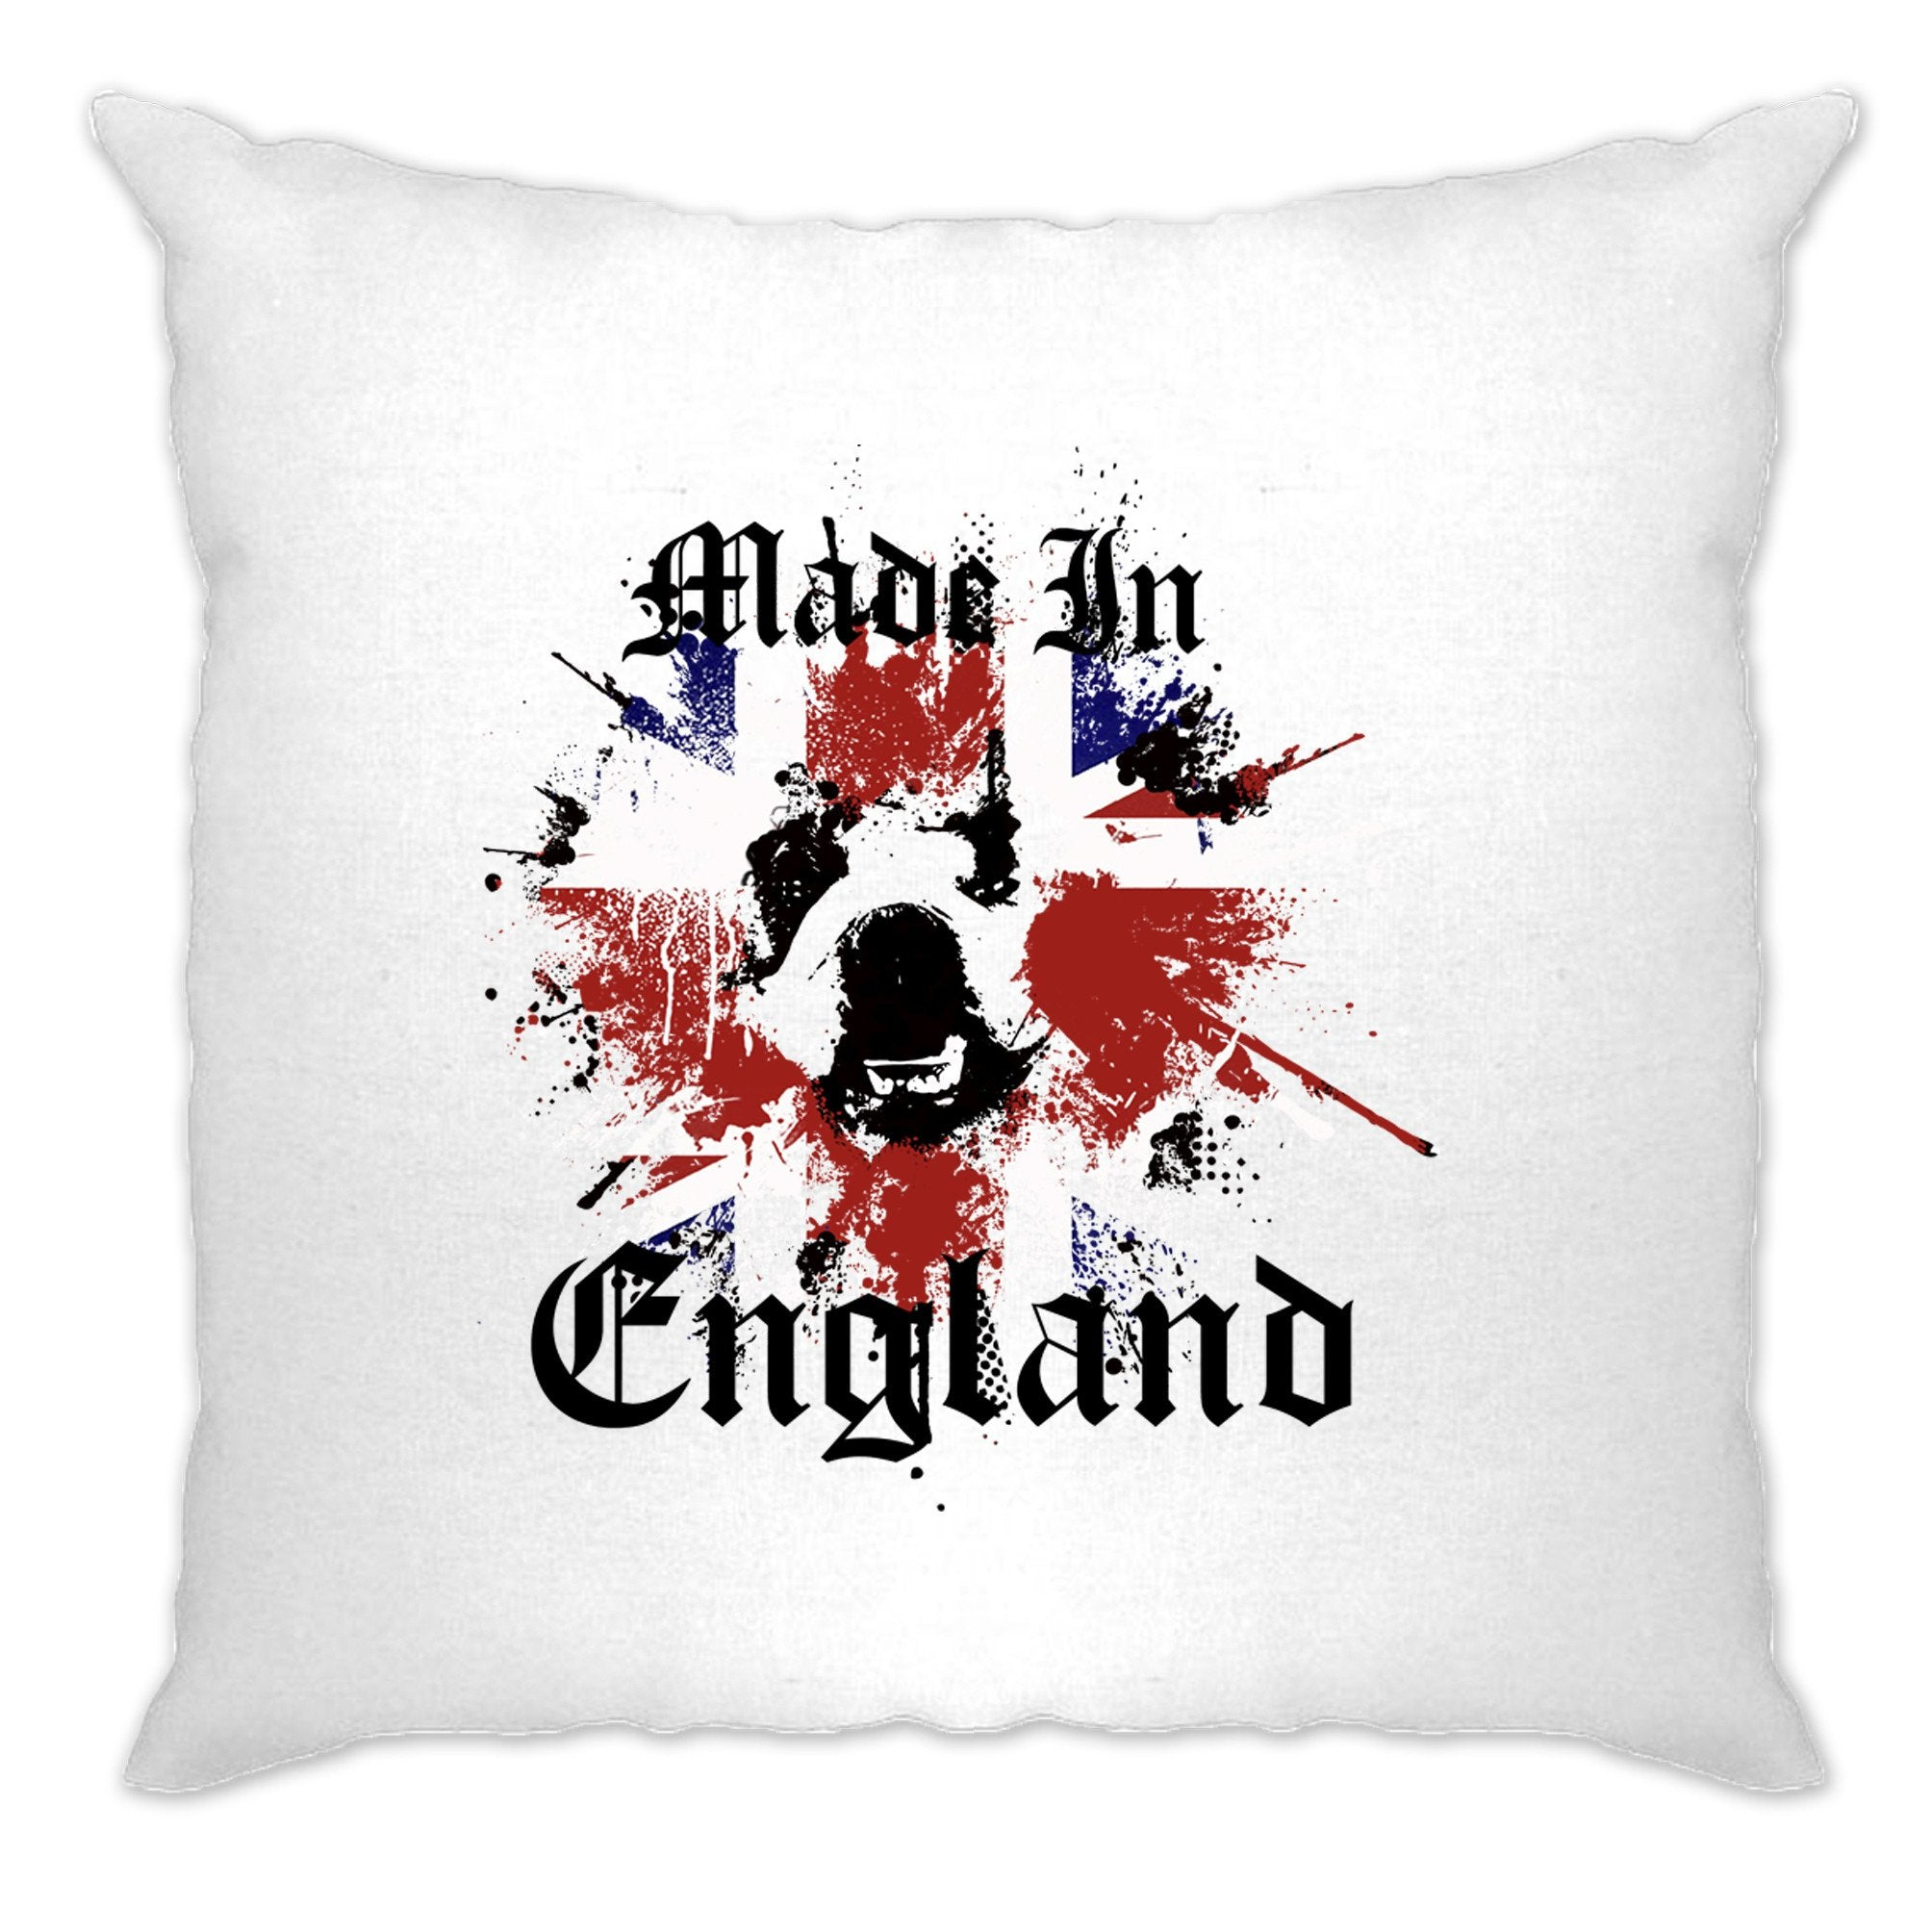 Made In England Cushion Cover British Bulldog